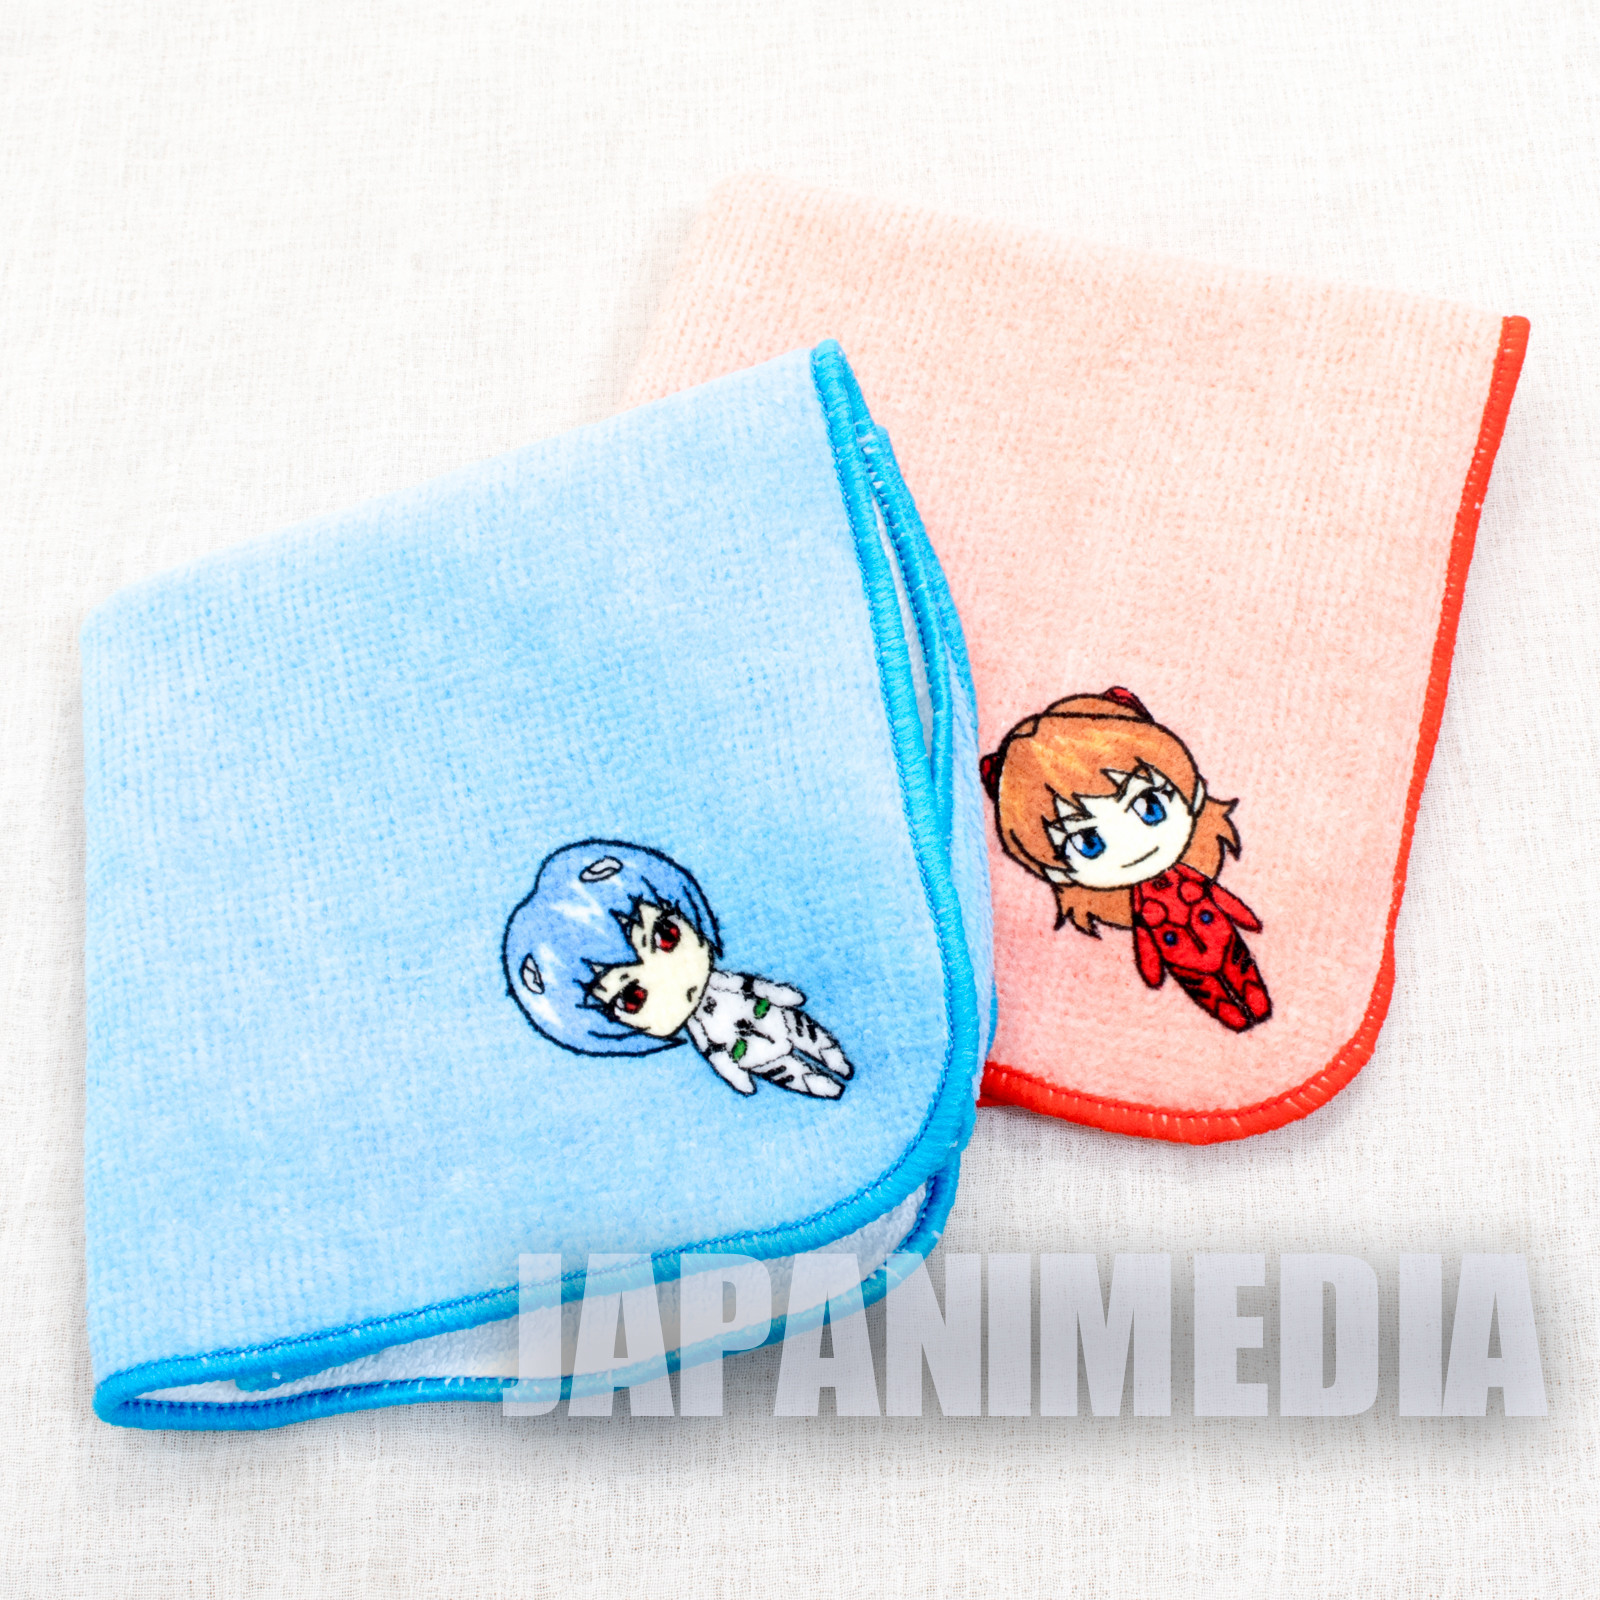 Evangelion Rei Ayanami & Asuka Langley Hand Towel Set JAPAN ANIME